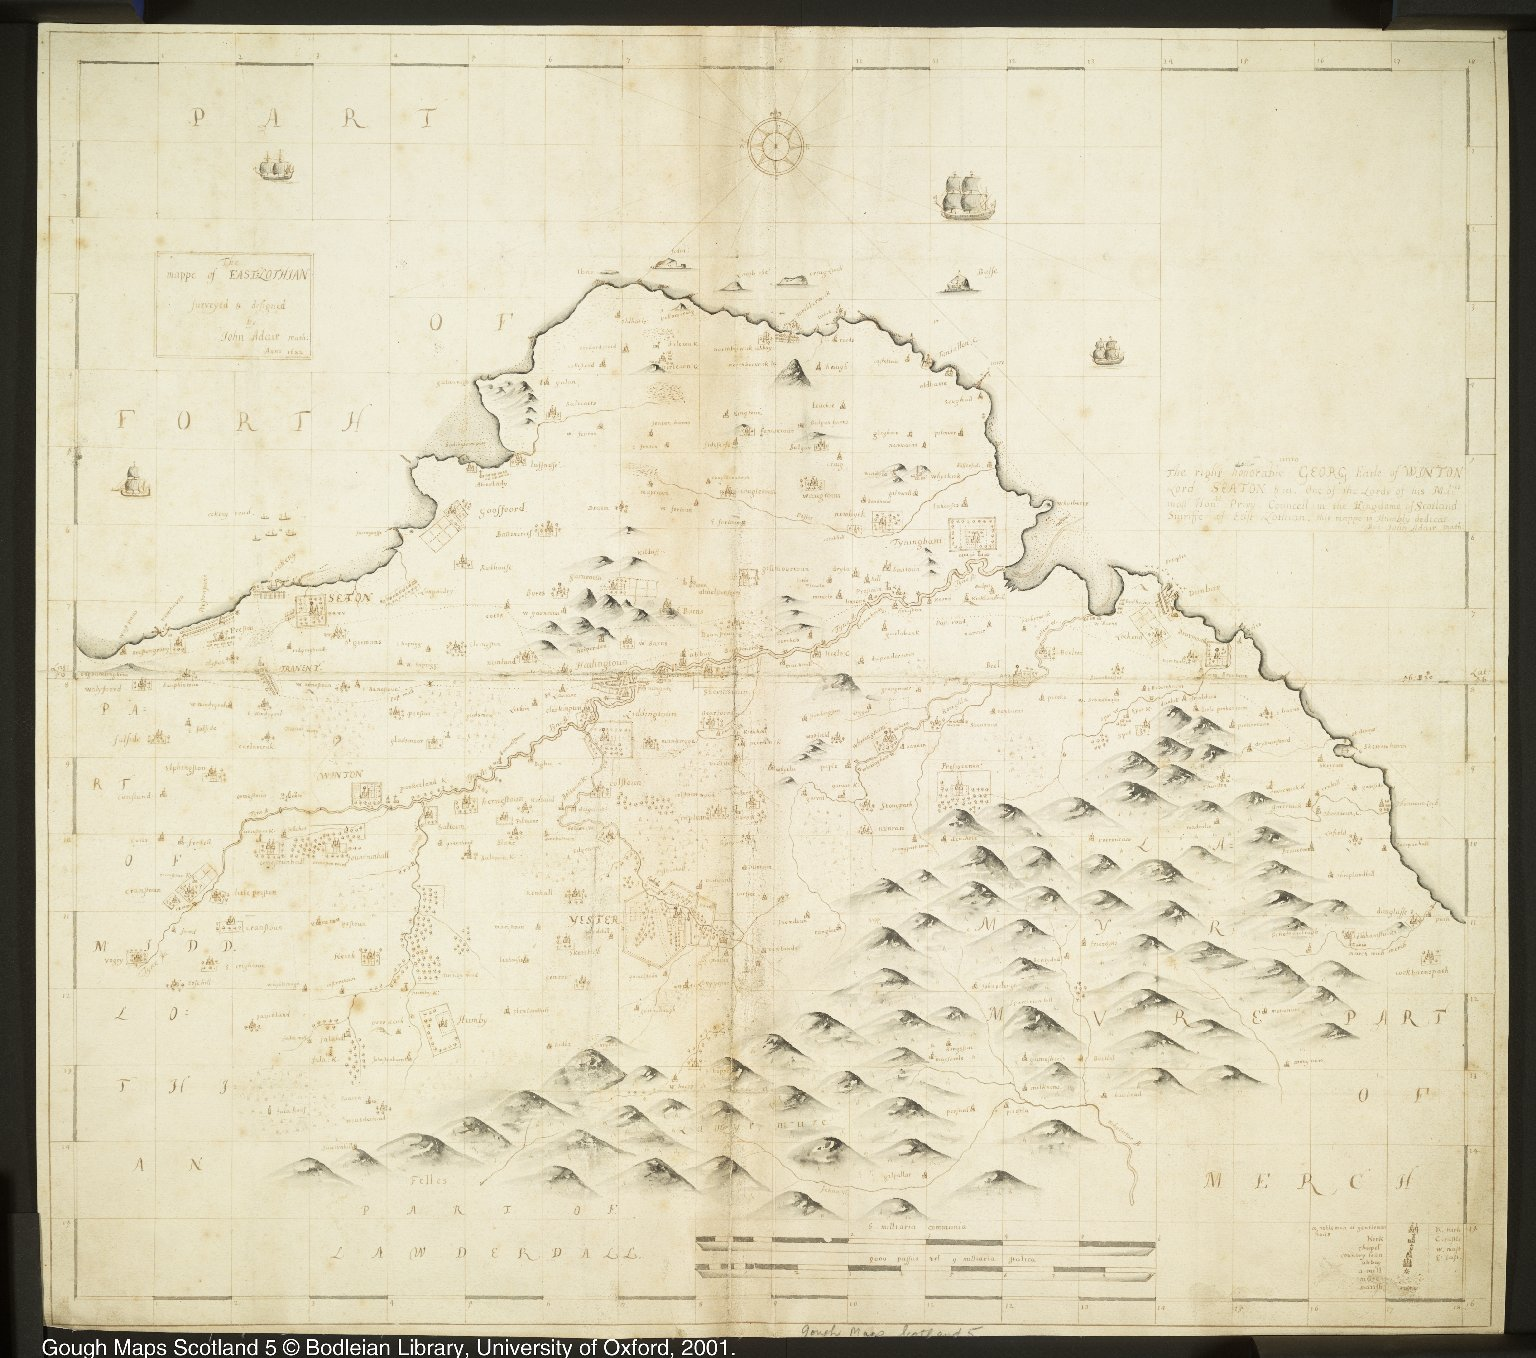 The mappe of EAST LOTHIAN [1 of 1]